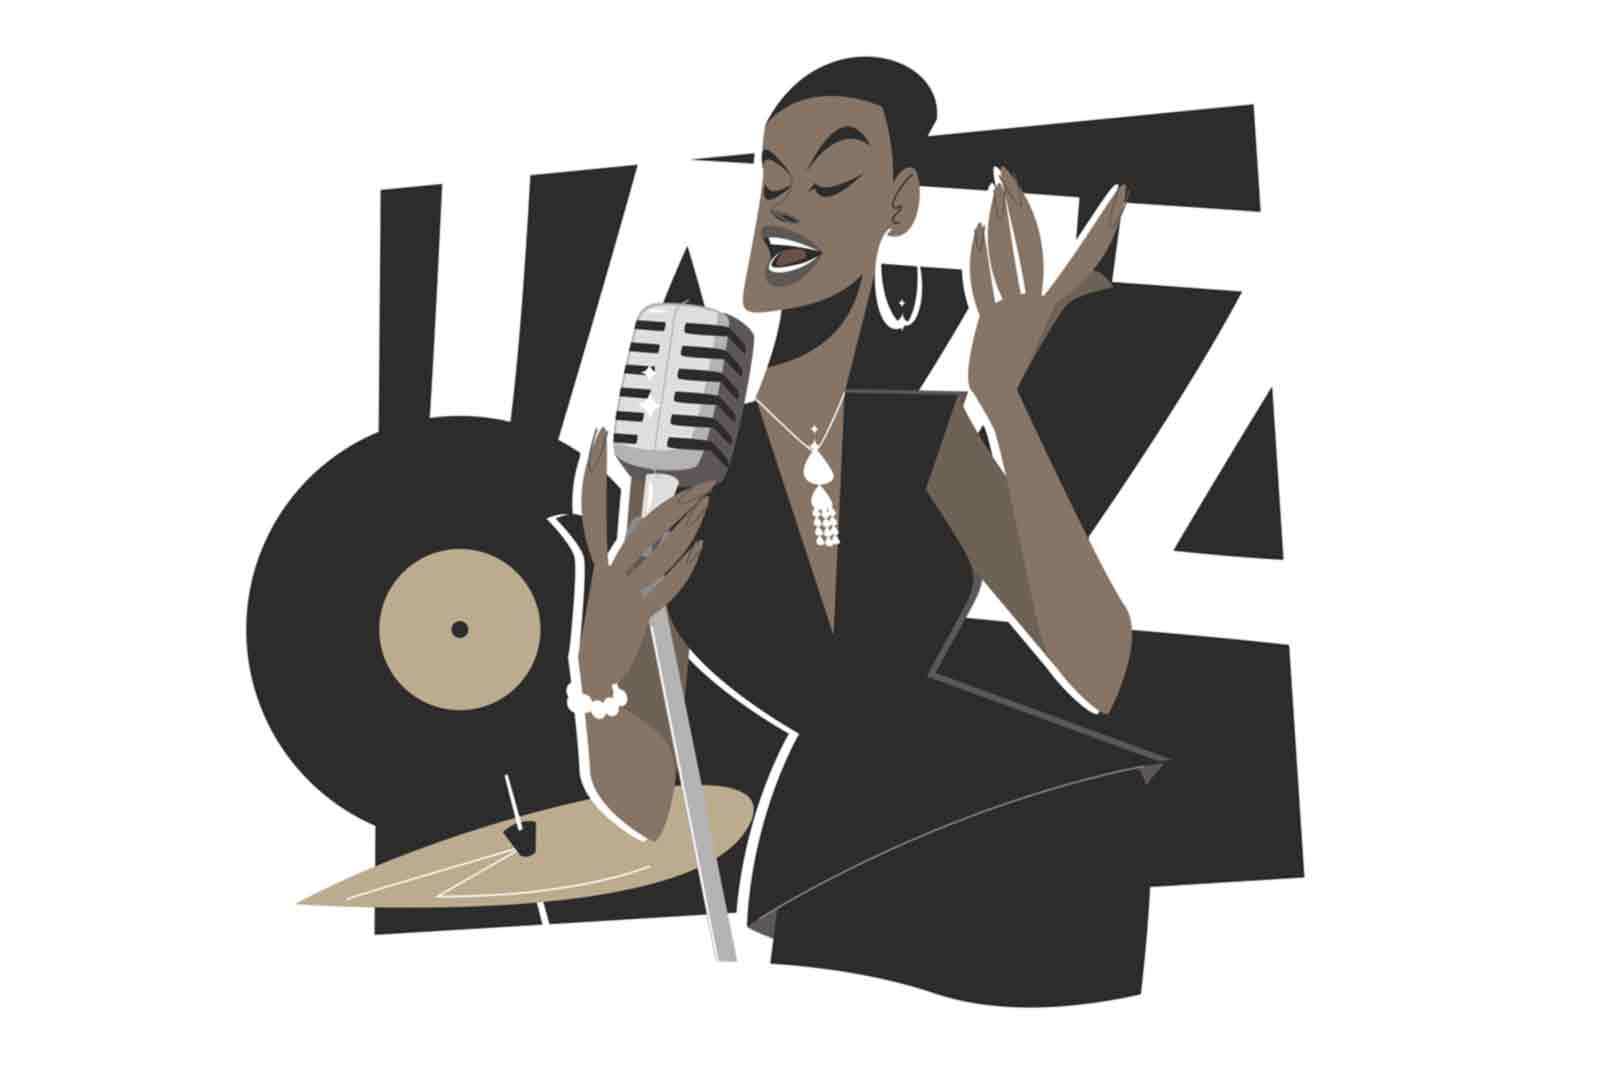 Afro american jazz singer vector illustration. Female musician singning and performing on stage flat style. Jazz, music, art and hobby concept. Isolated on white background